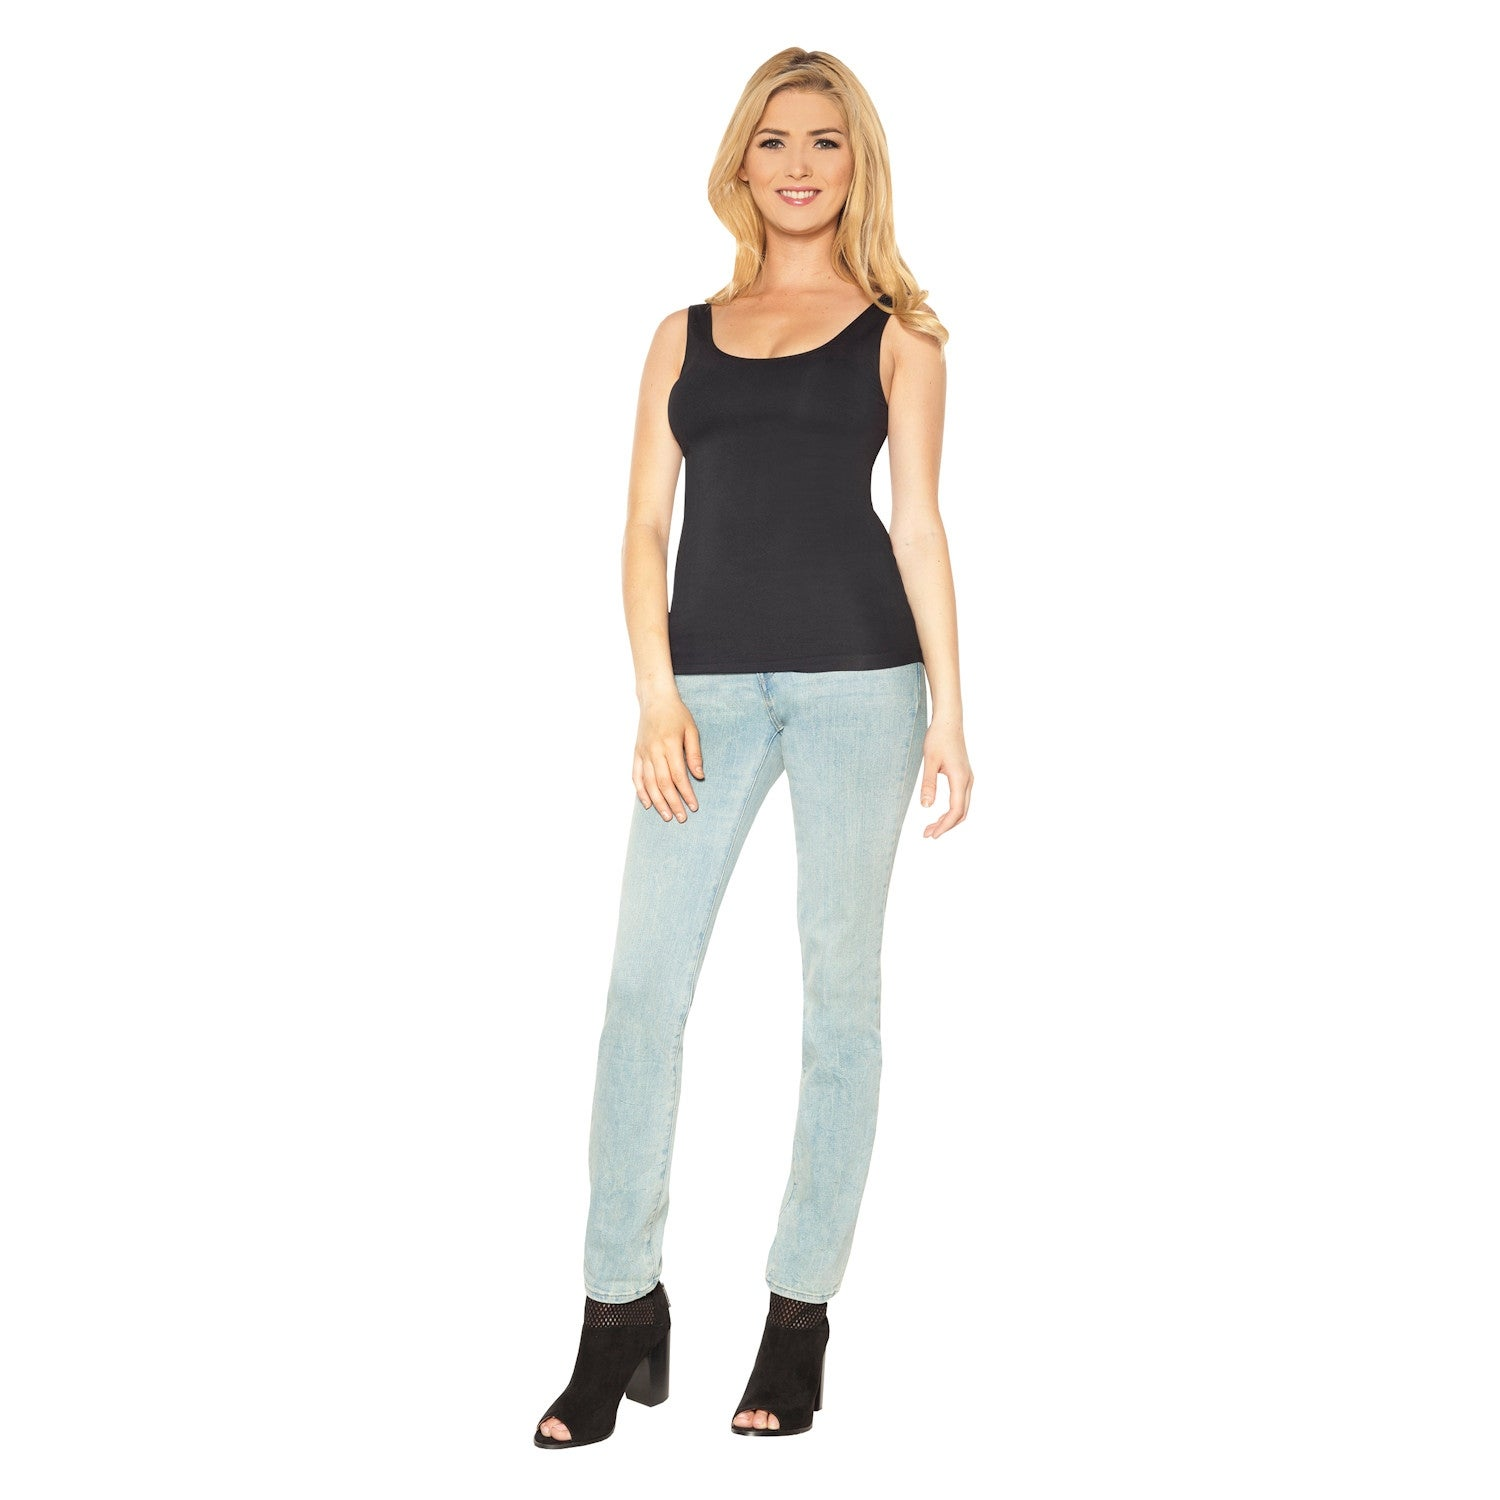 a1f4cc6e7a71e Shop Ahh by Rhonda Shear Women s Seamless Shaping Tank Top with Built-In  Shelf Bra - On Sale - Free Shipping On Orders Over  45 - Overstock -  20487475